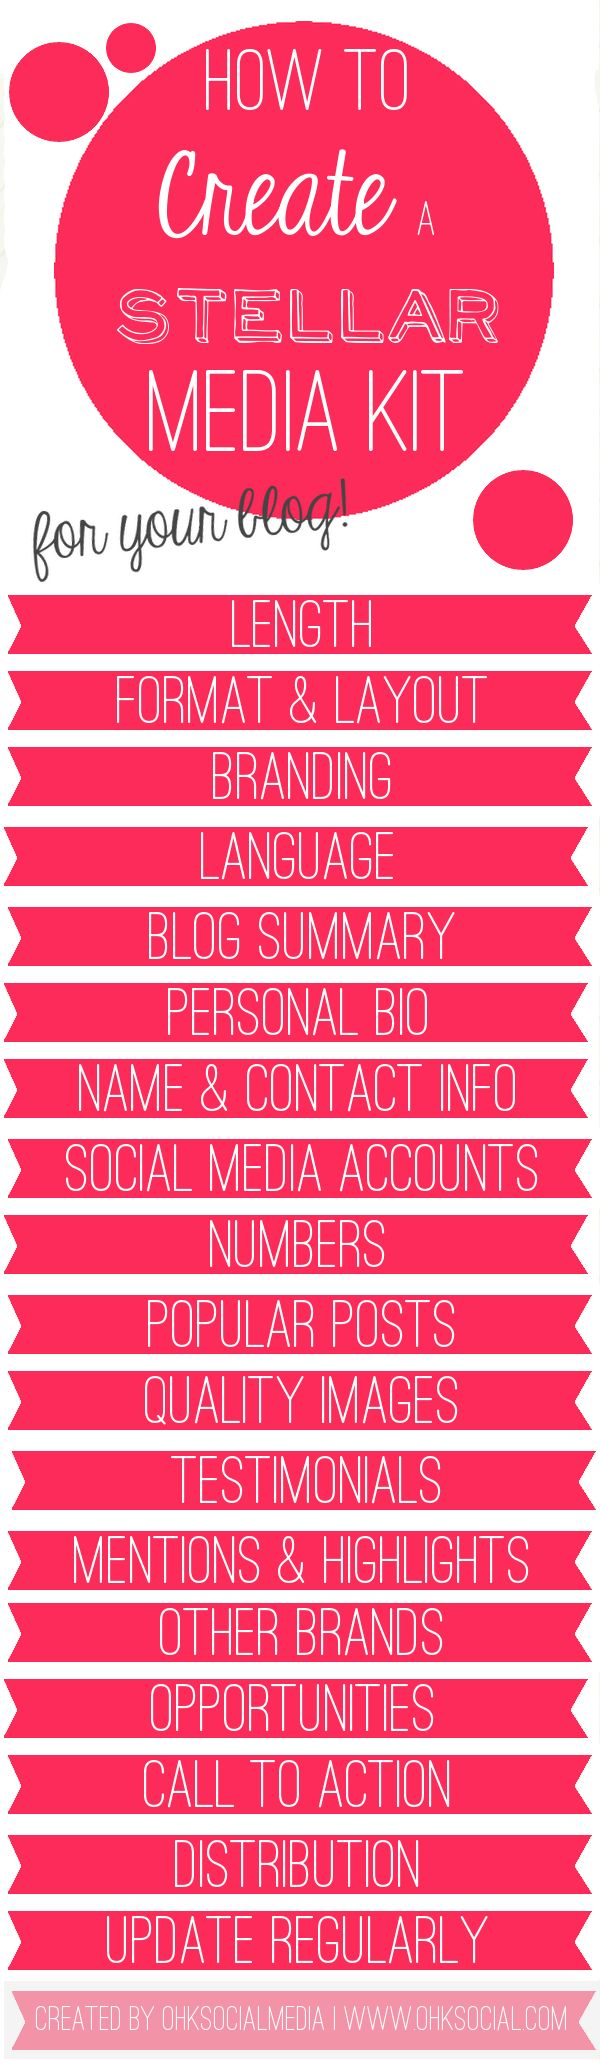 The decisive guide to creating a stellar media kit that gets you noticed & working with brands and sponsors so you can make money blogging!